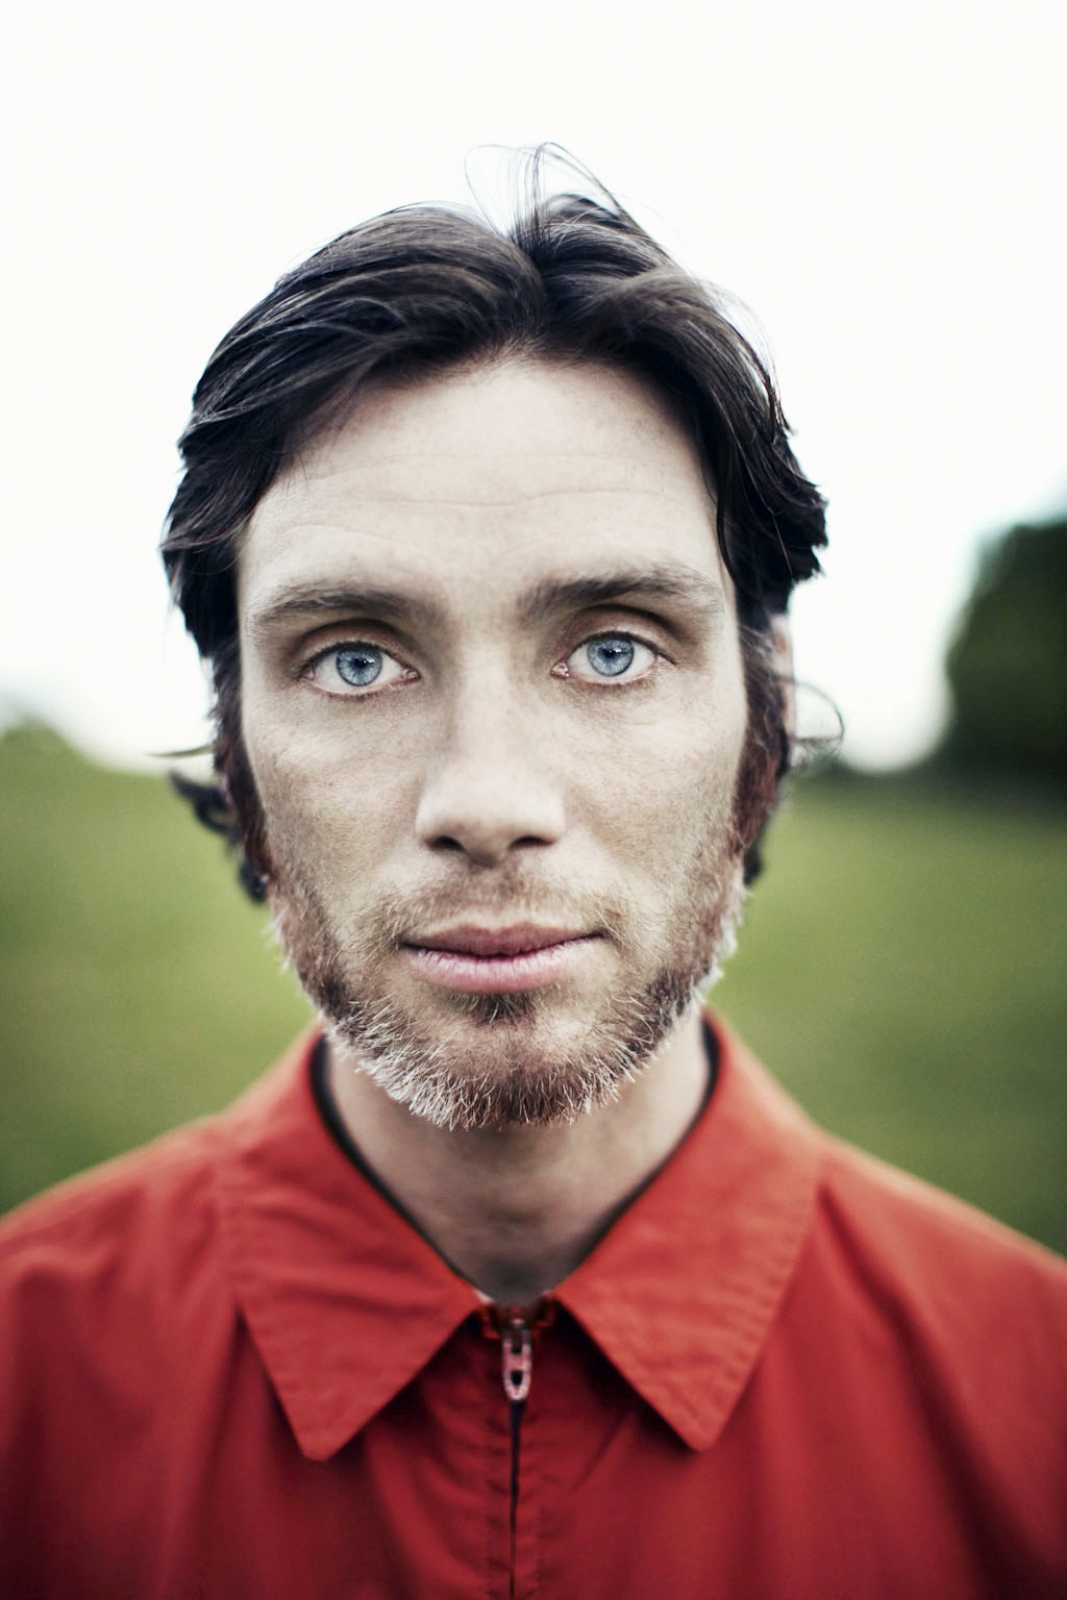 Cillian Murphy by Rich Gilligan